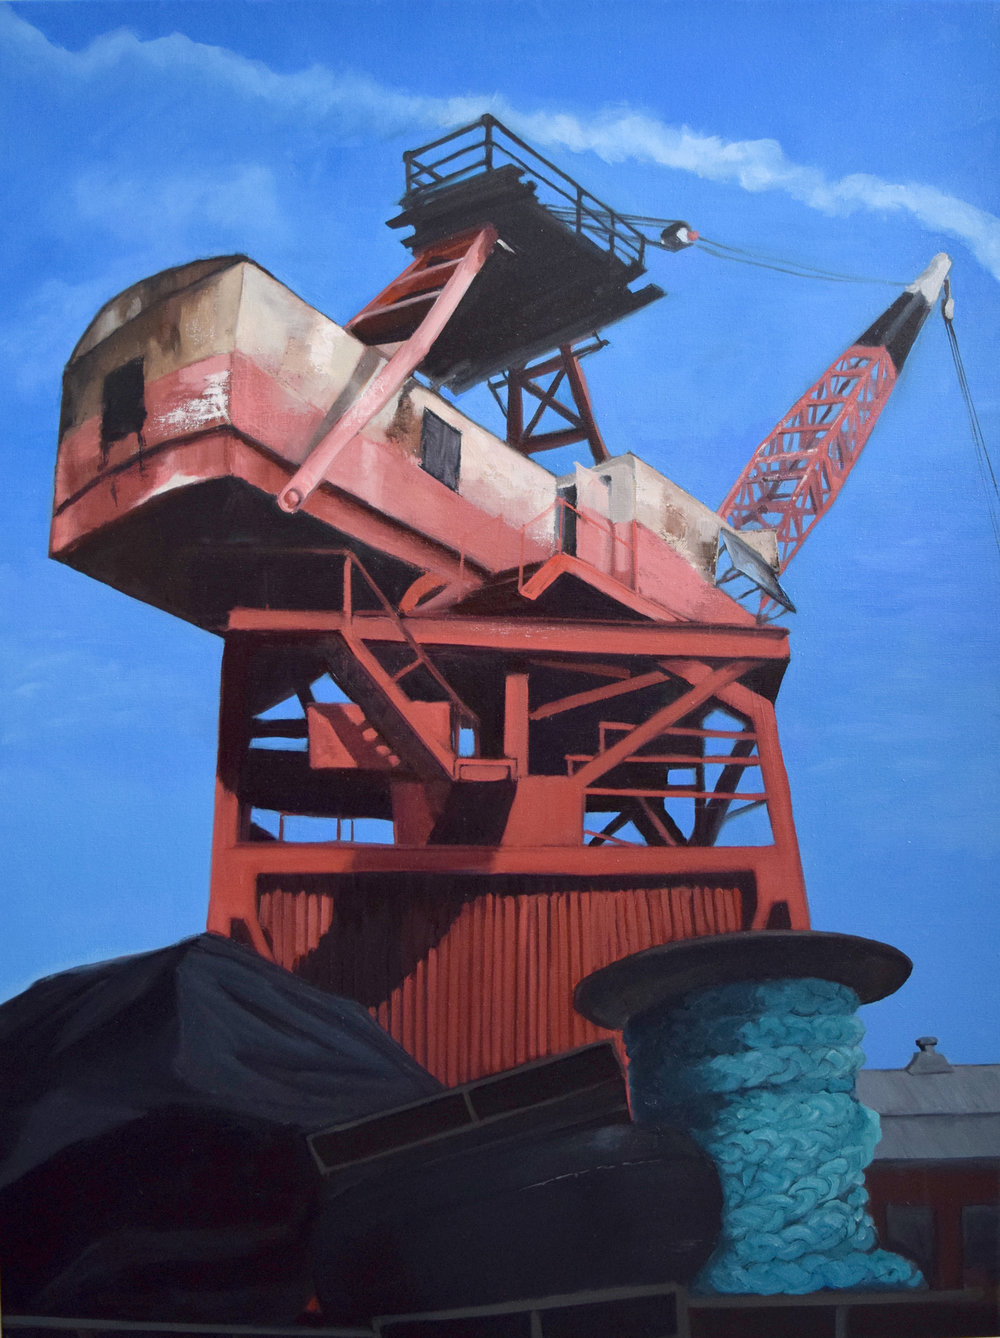 Pretty Industrial  -   I have a show, Pretty Industrial opening/artist reception November 5th, 5-7pm at the Sweet Lorraine Gallery, located in Ti Art Studios, 183 Lorraine St, Brooklyn, NY. I'll be adding to my Gowanus portfolio, and showing more cranes, which I was fortunate to paint this summer thanks to the Brooklyn Navy Yard's artist in residence program. The show will be up for the month of November and available to see by appointment after the opening.